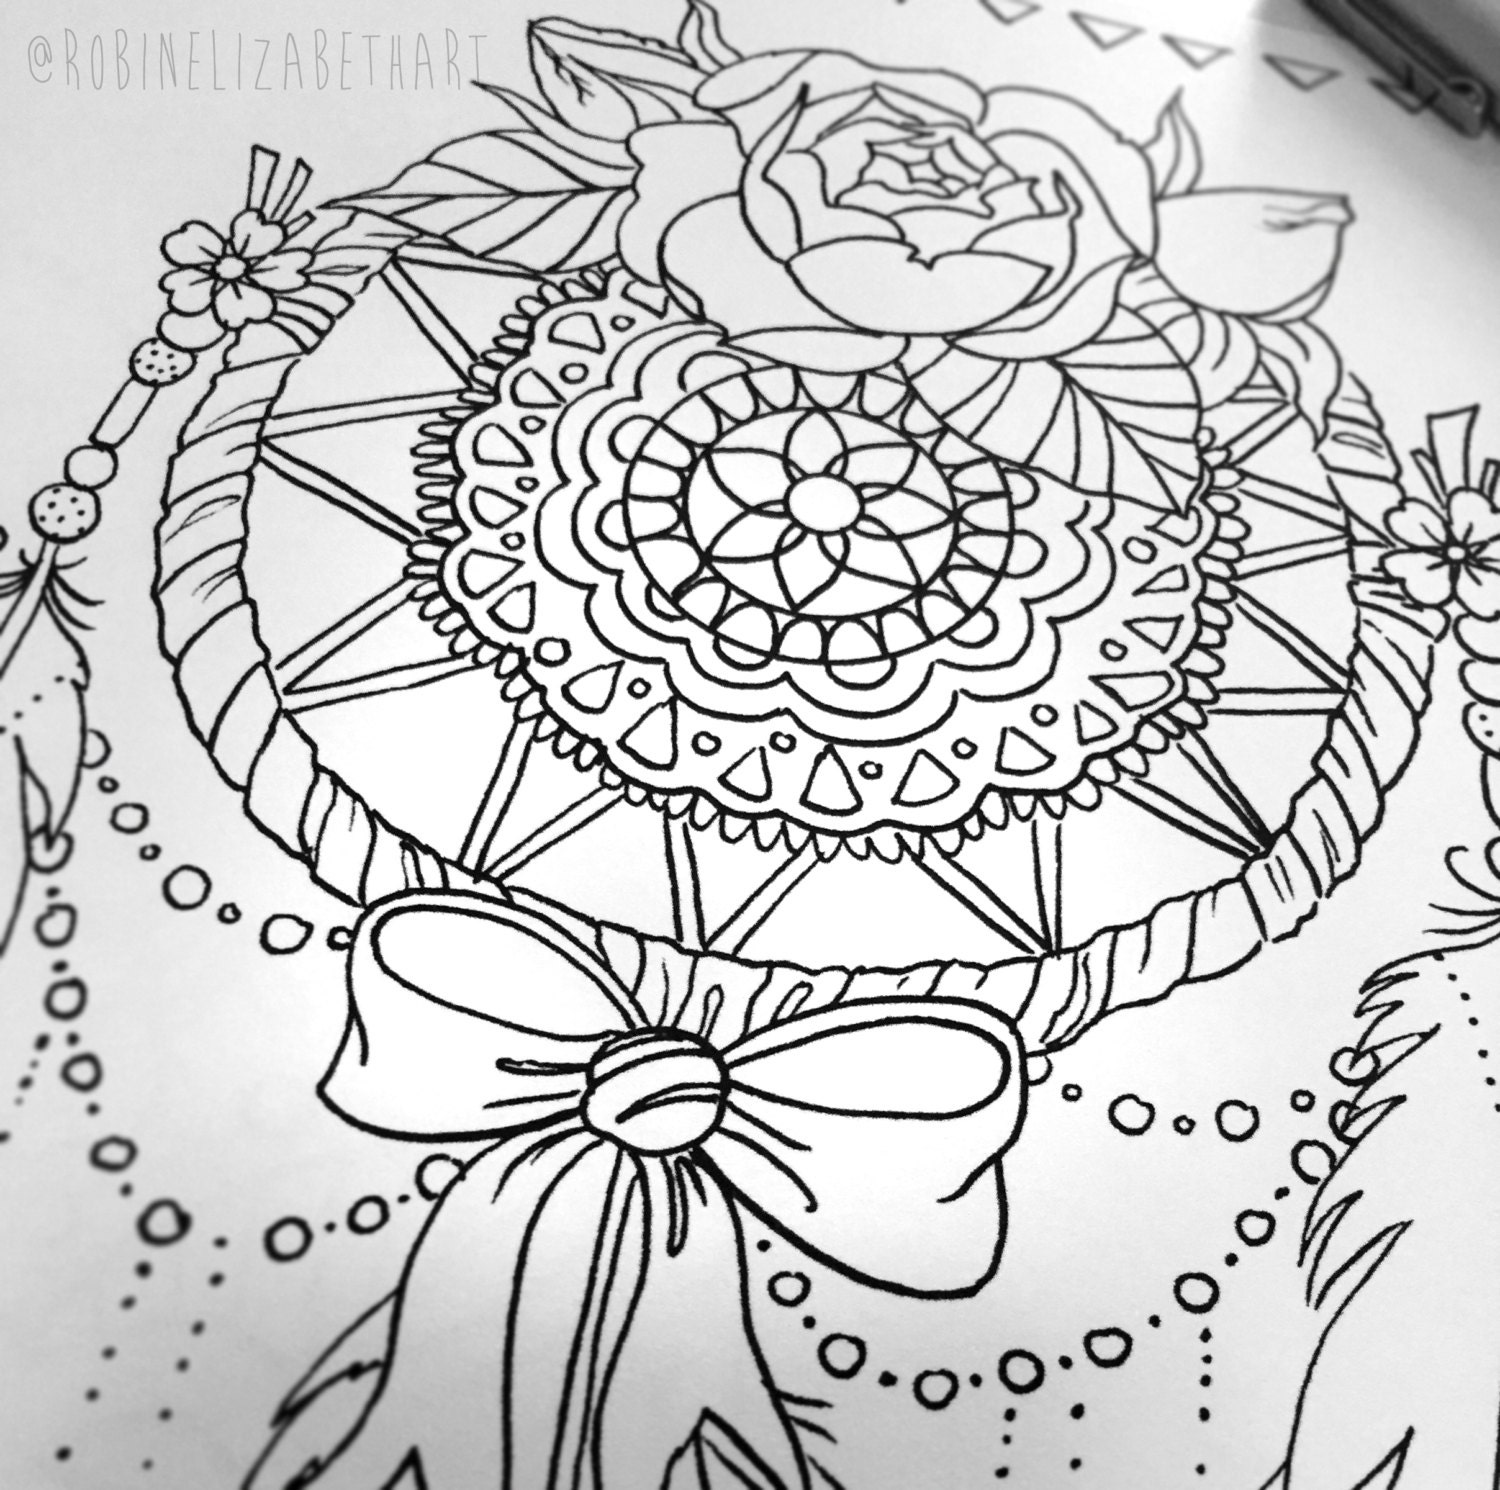 dreams coloring pages - photo#12